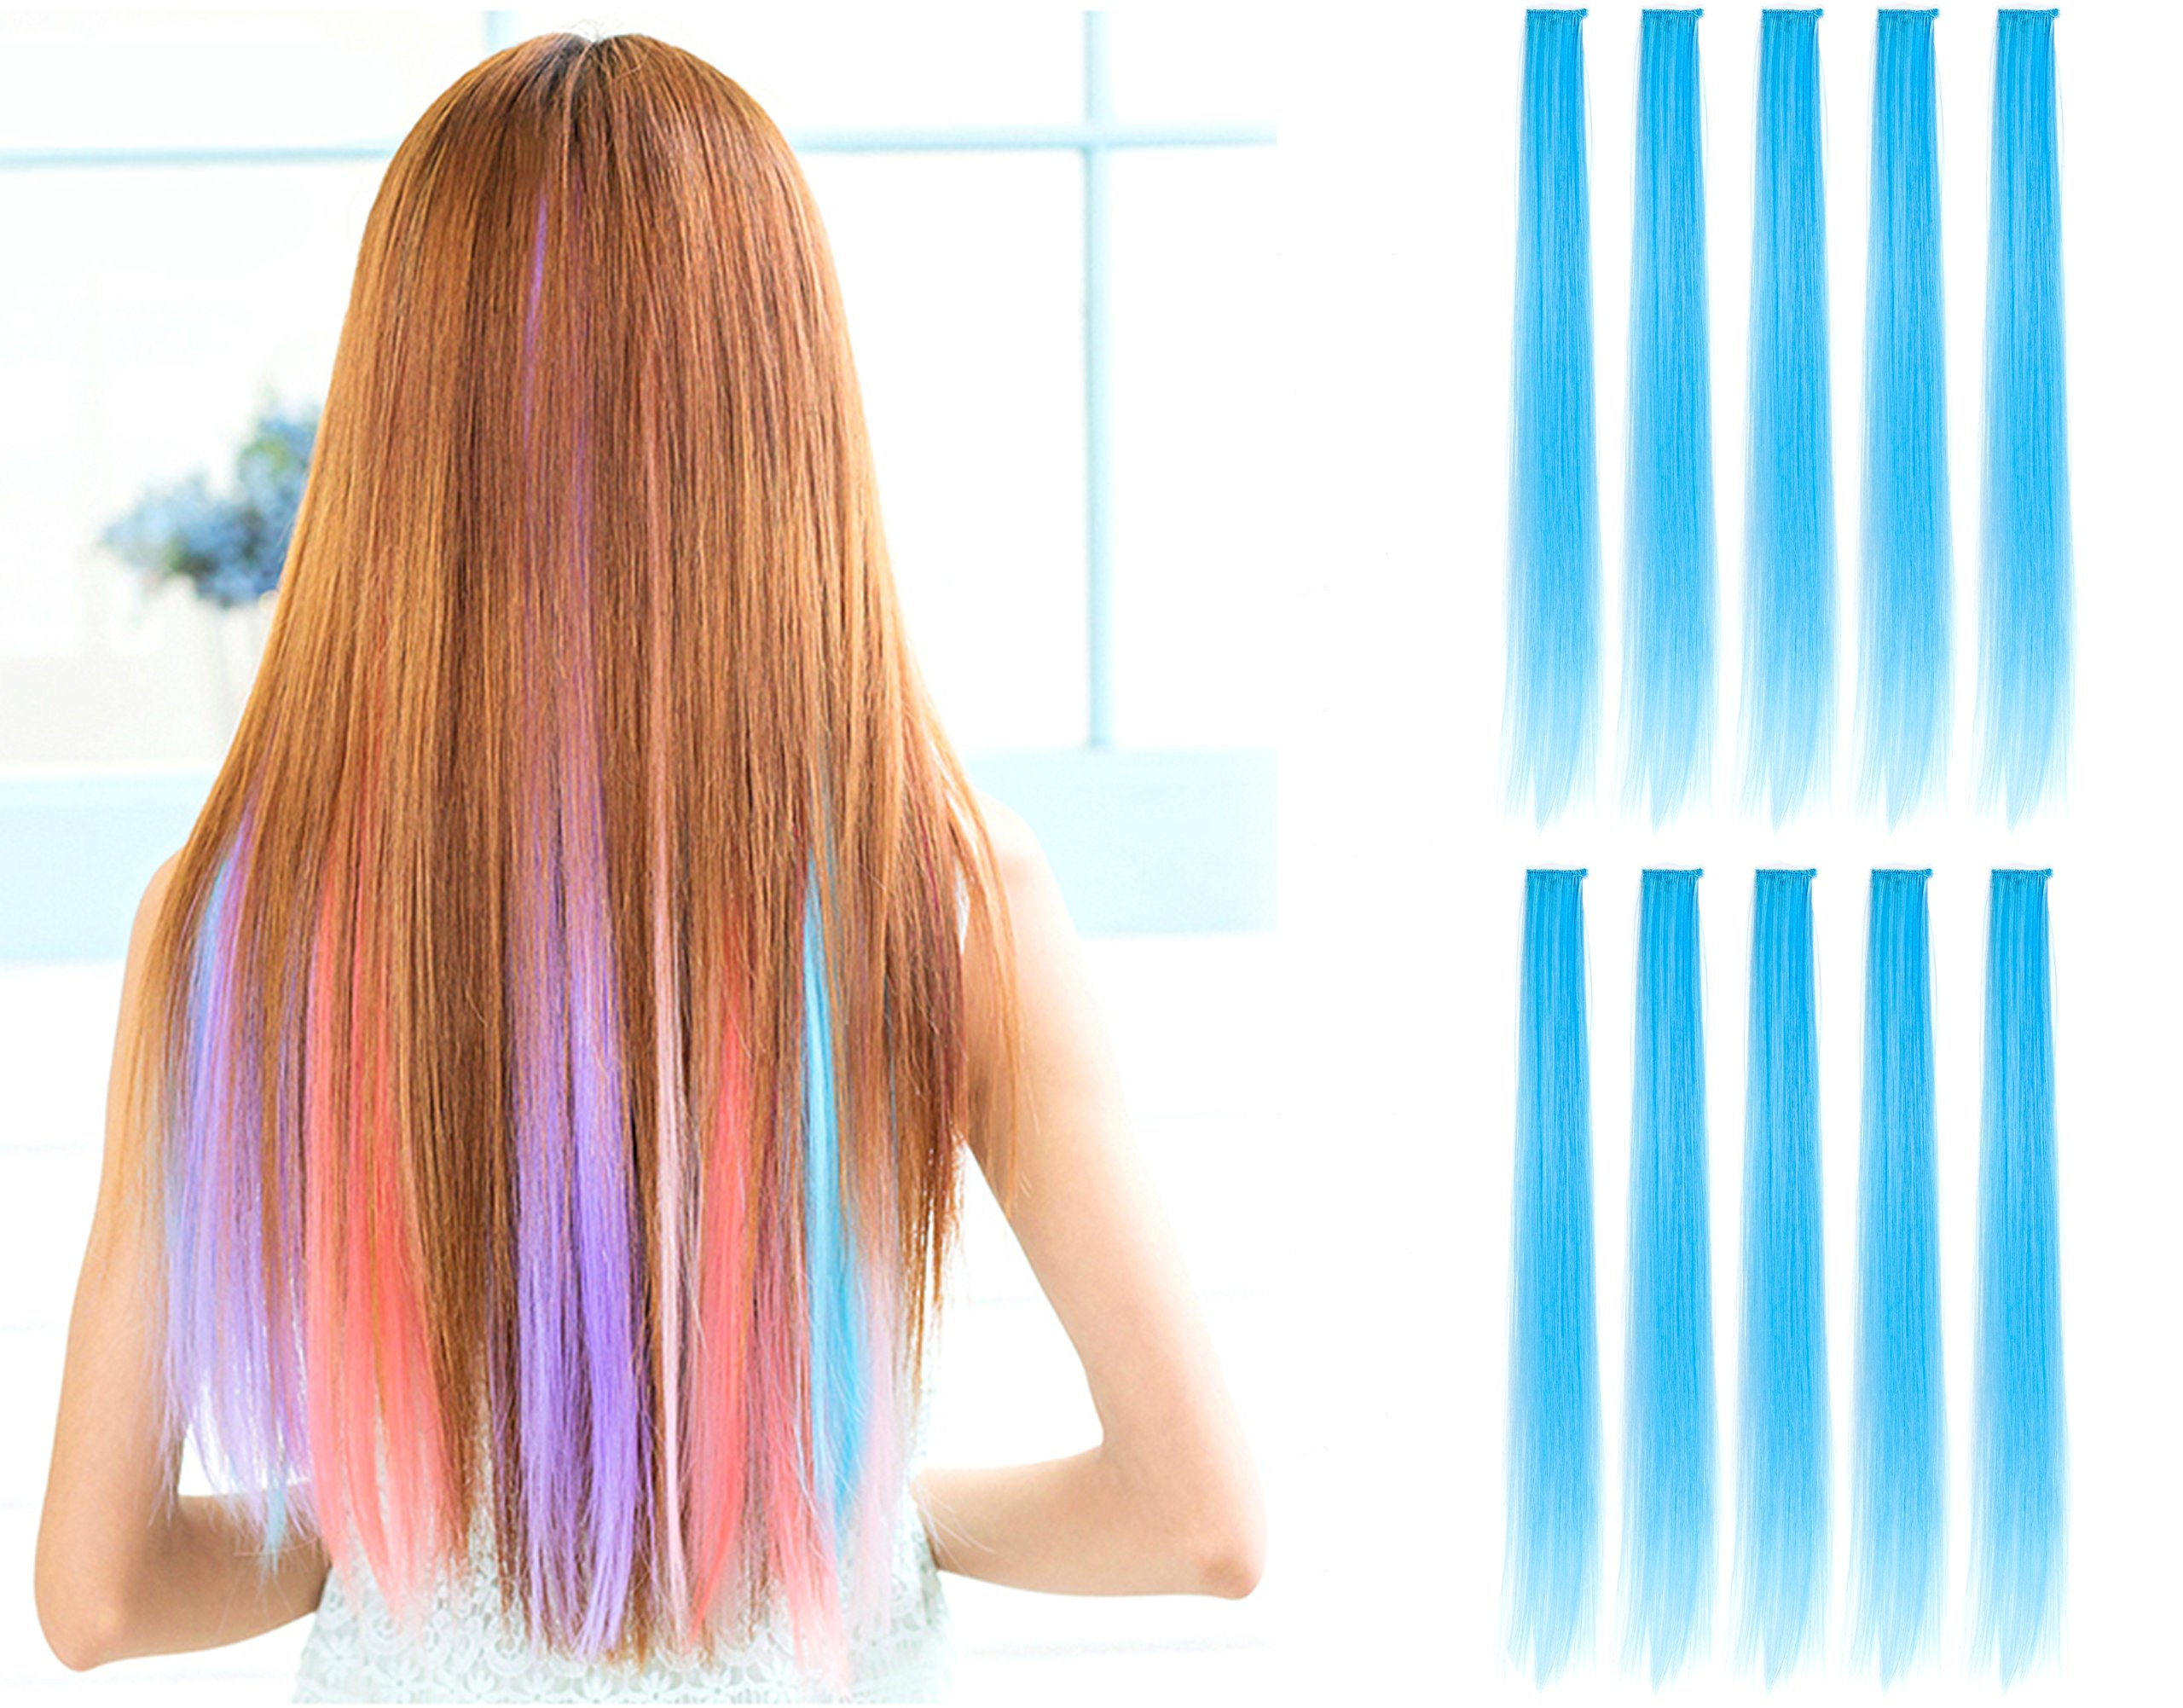 OneDor 23 Inch Straight Colored Party Highlight Clip on in Hair Extensions Multiple Colors (10 Pcs Sky Blue)